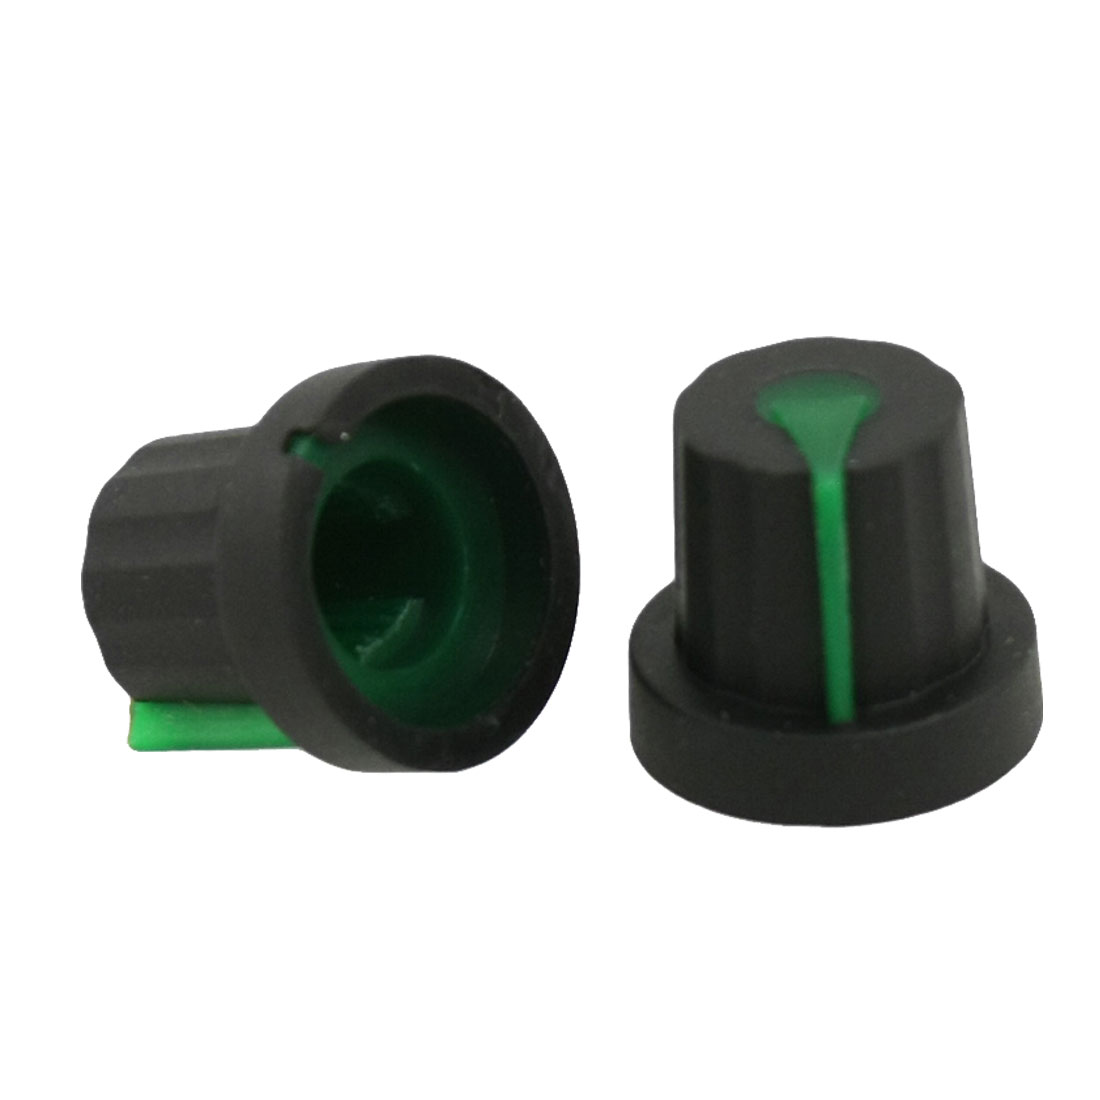 5 Pcs 11mm Top Dia Black Knobs w Green Mark for Potentiometer Pot